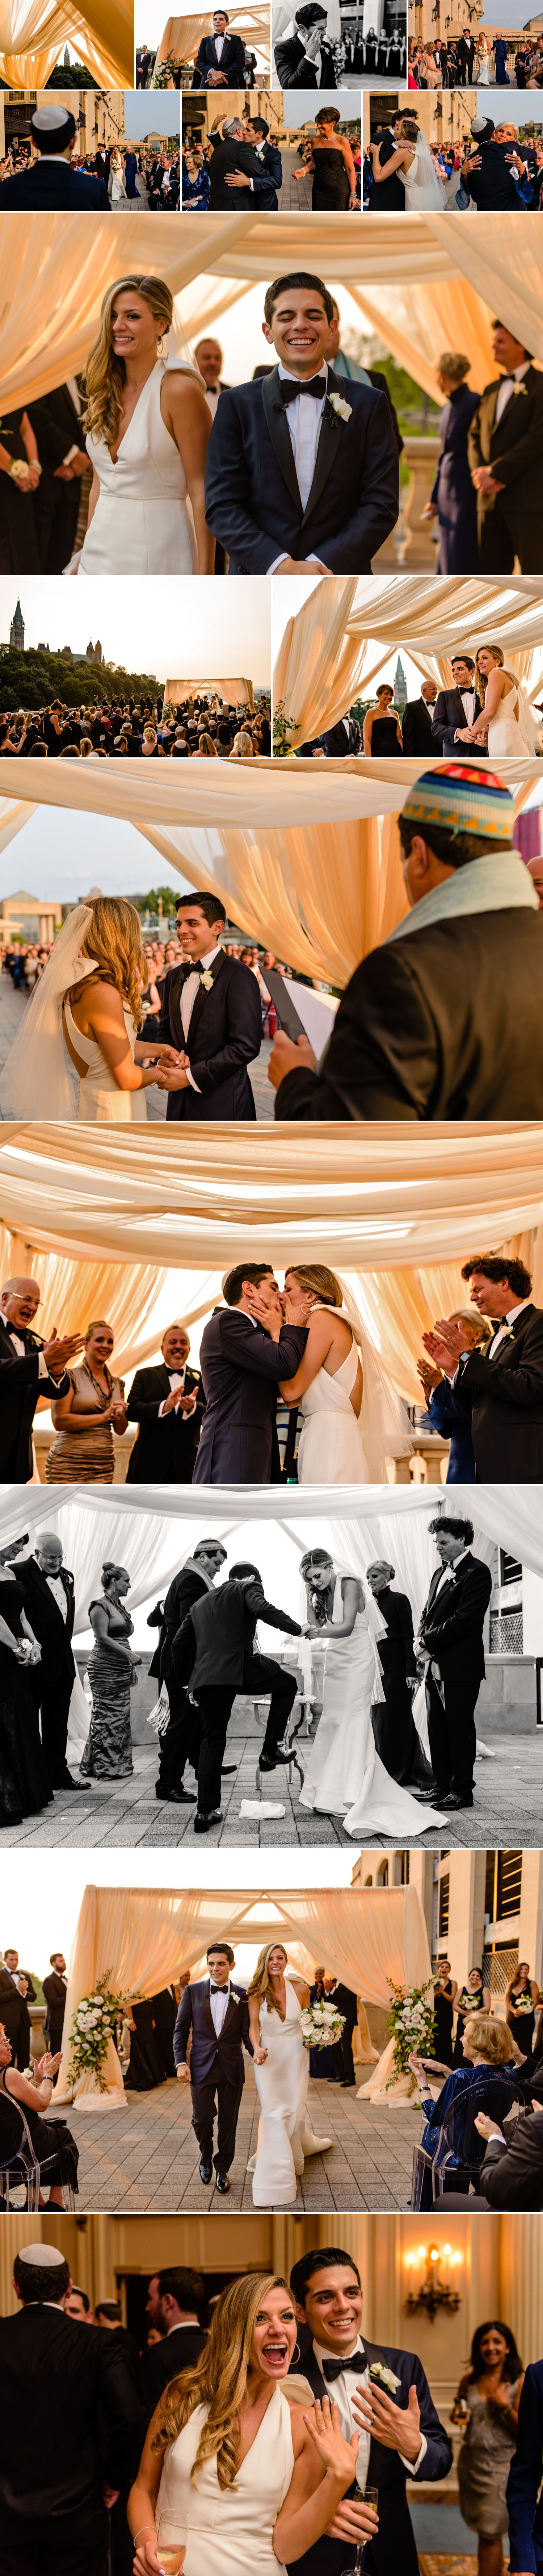 candid moments from a jewish wedding ceremony on the terrace of the fairmont chateau laurier in ottawa on